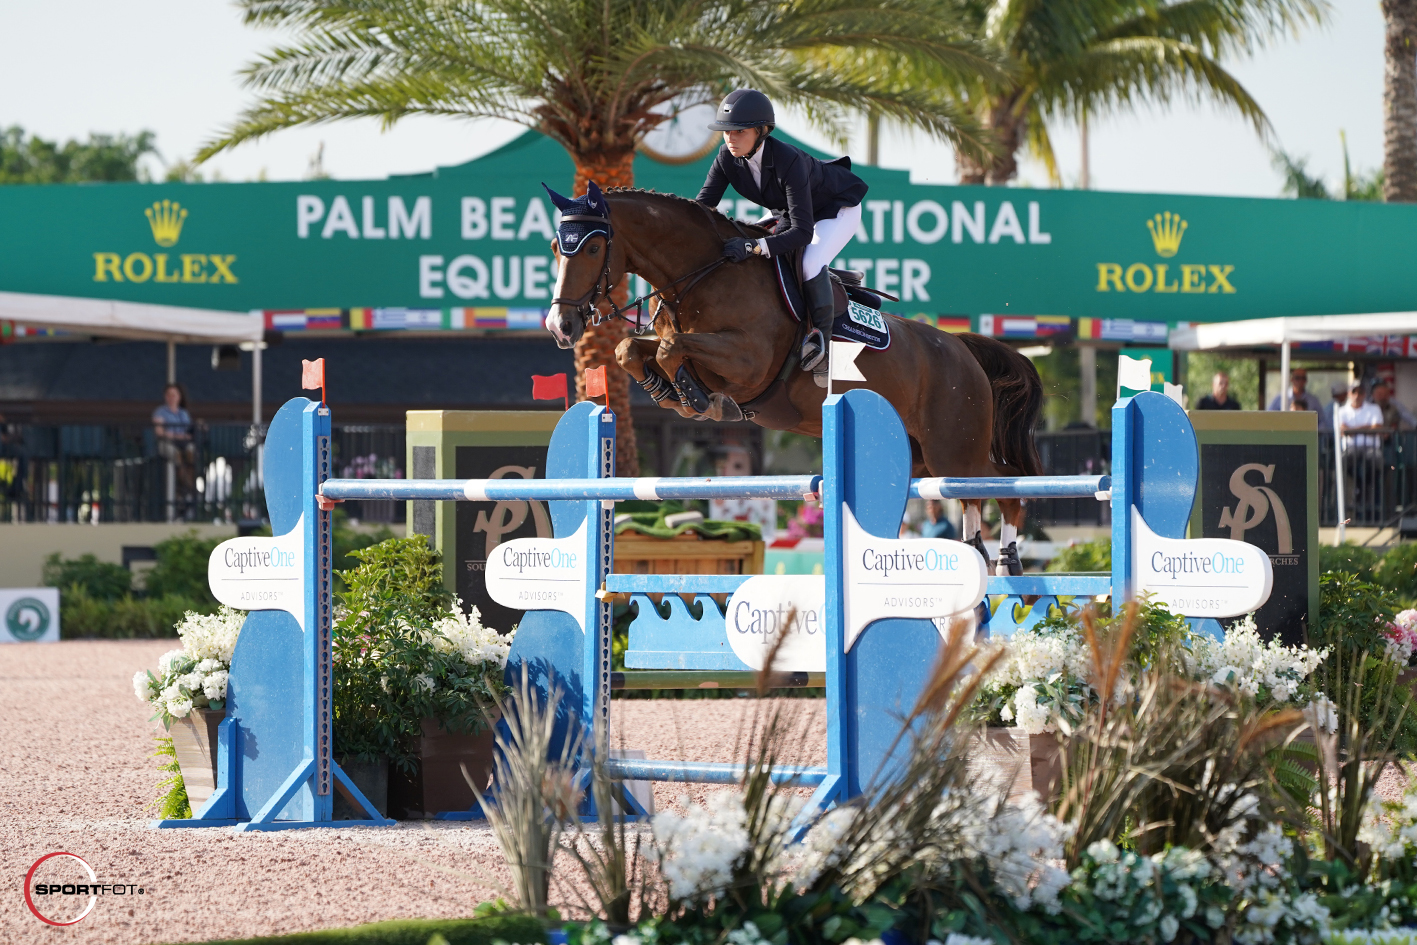 Lillie Keenan and Fasther 43504966 Sportfot